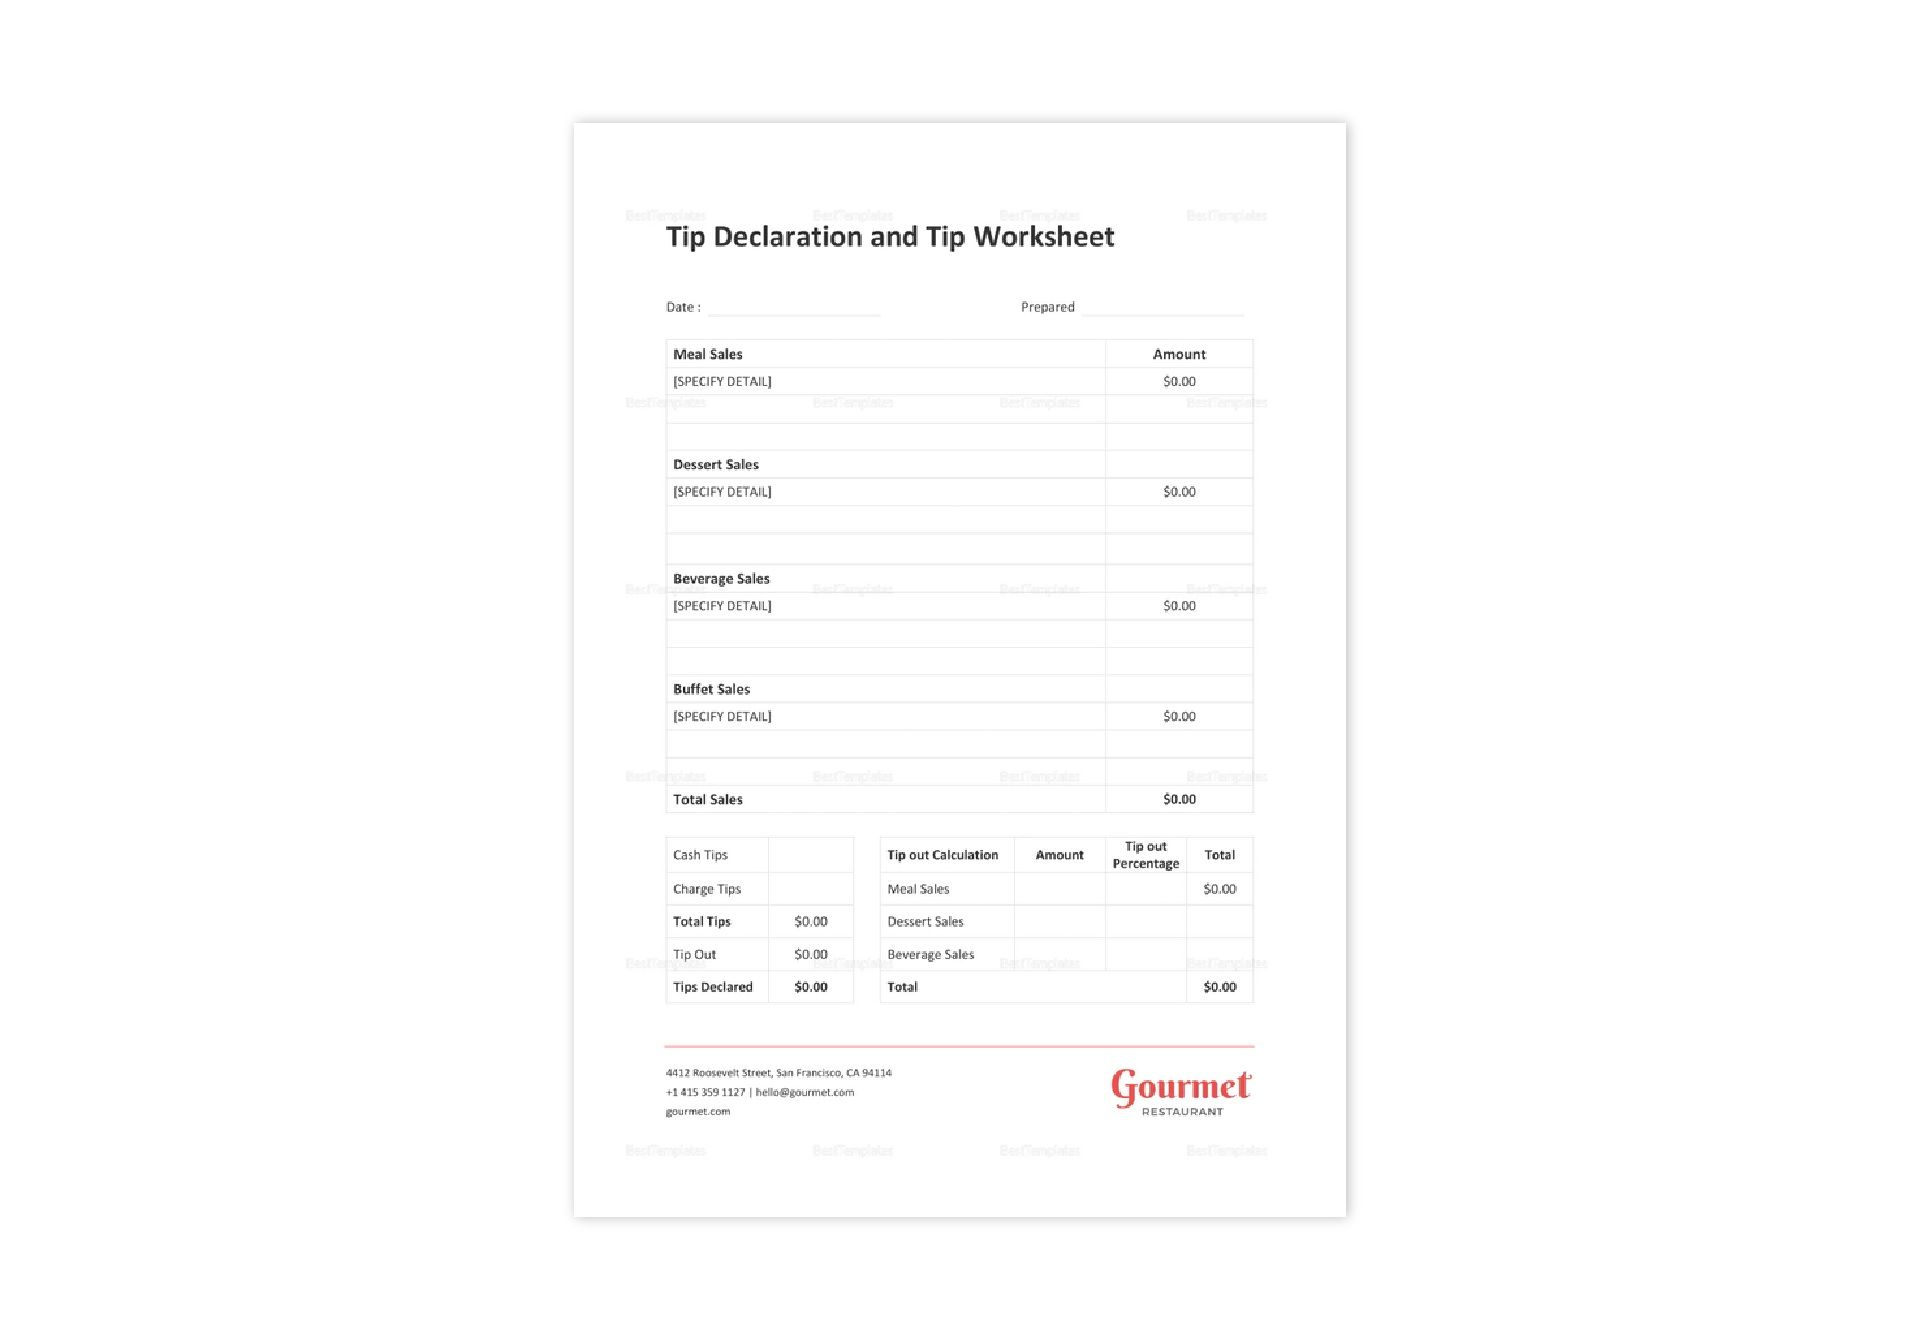 Restaurant Tip Declaration And Tipout Worksheet Template